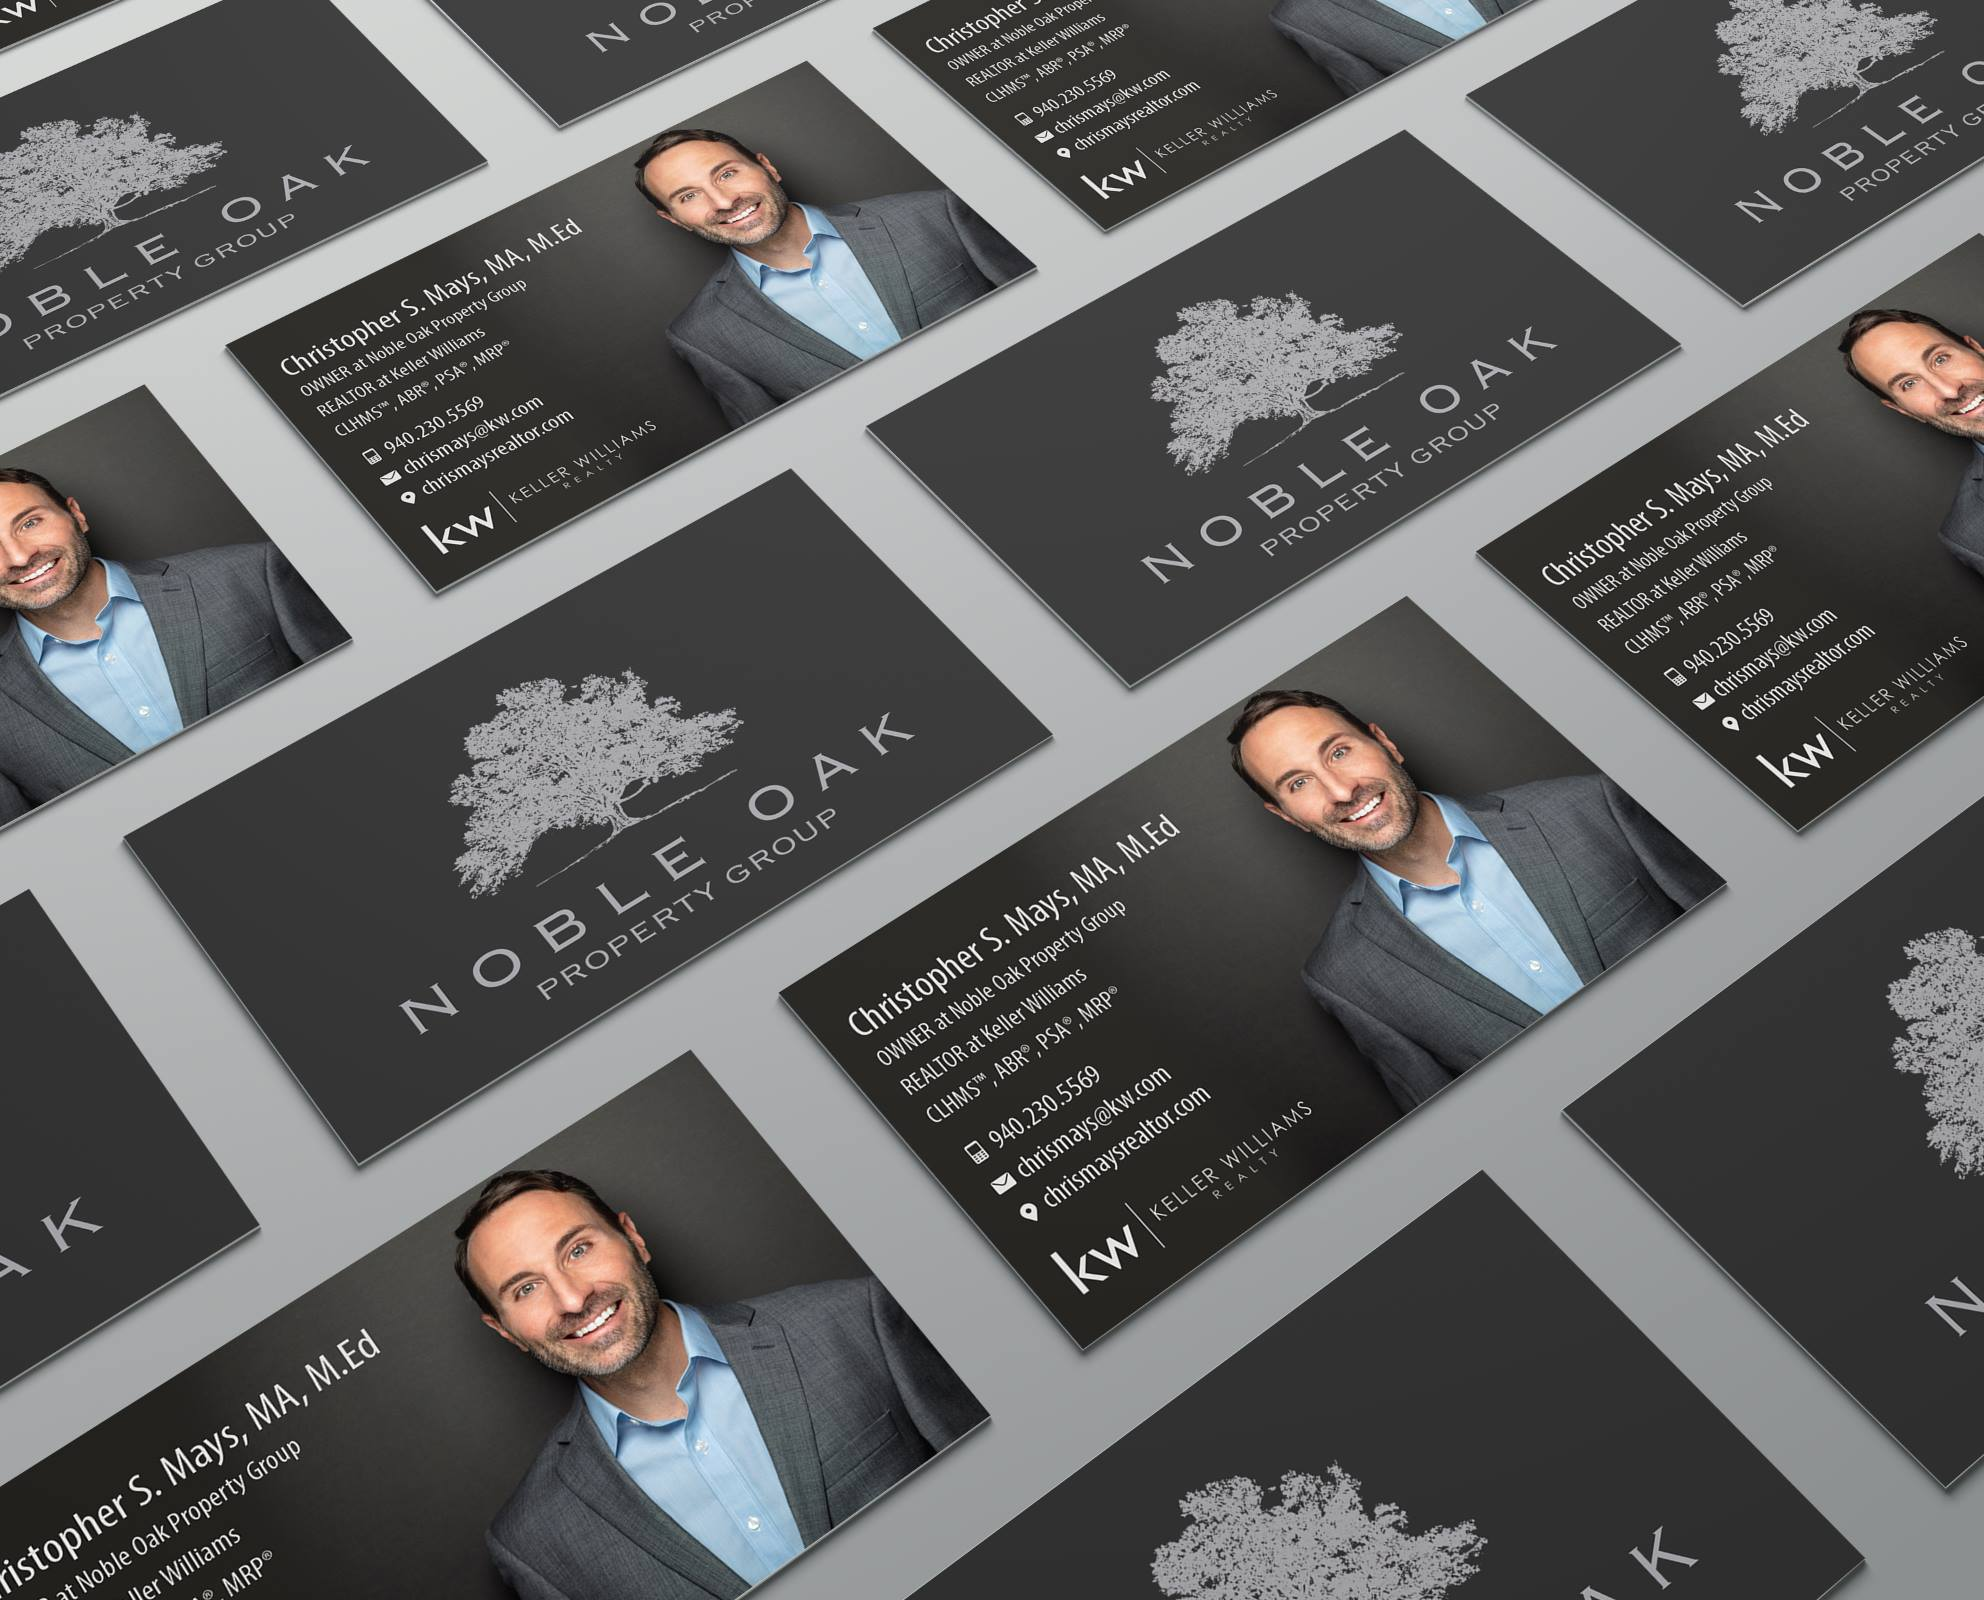 Chris Mays Realtor in a Blue Suit on his business card